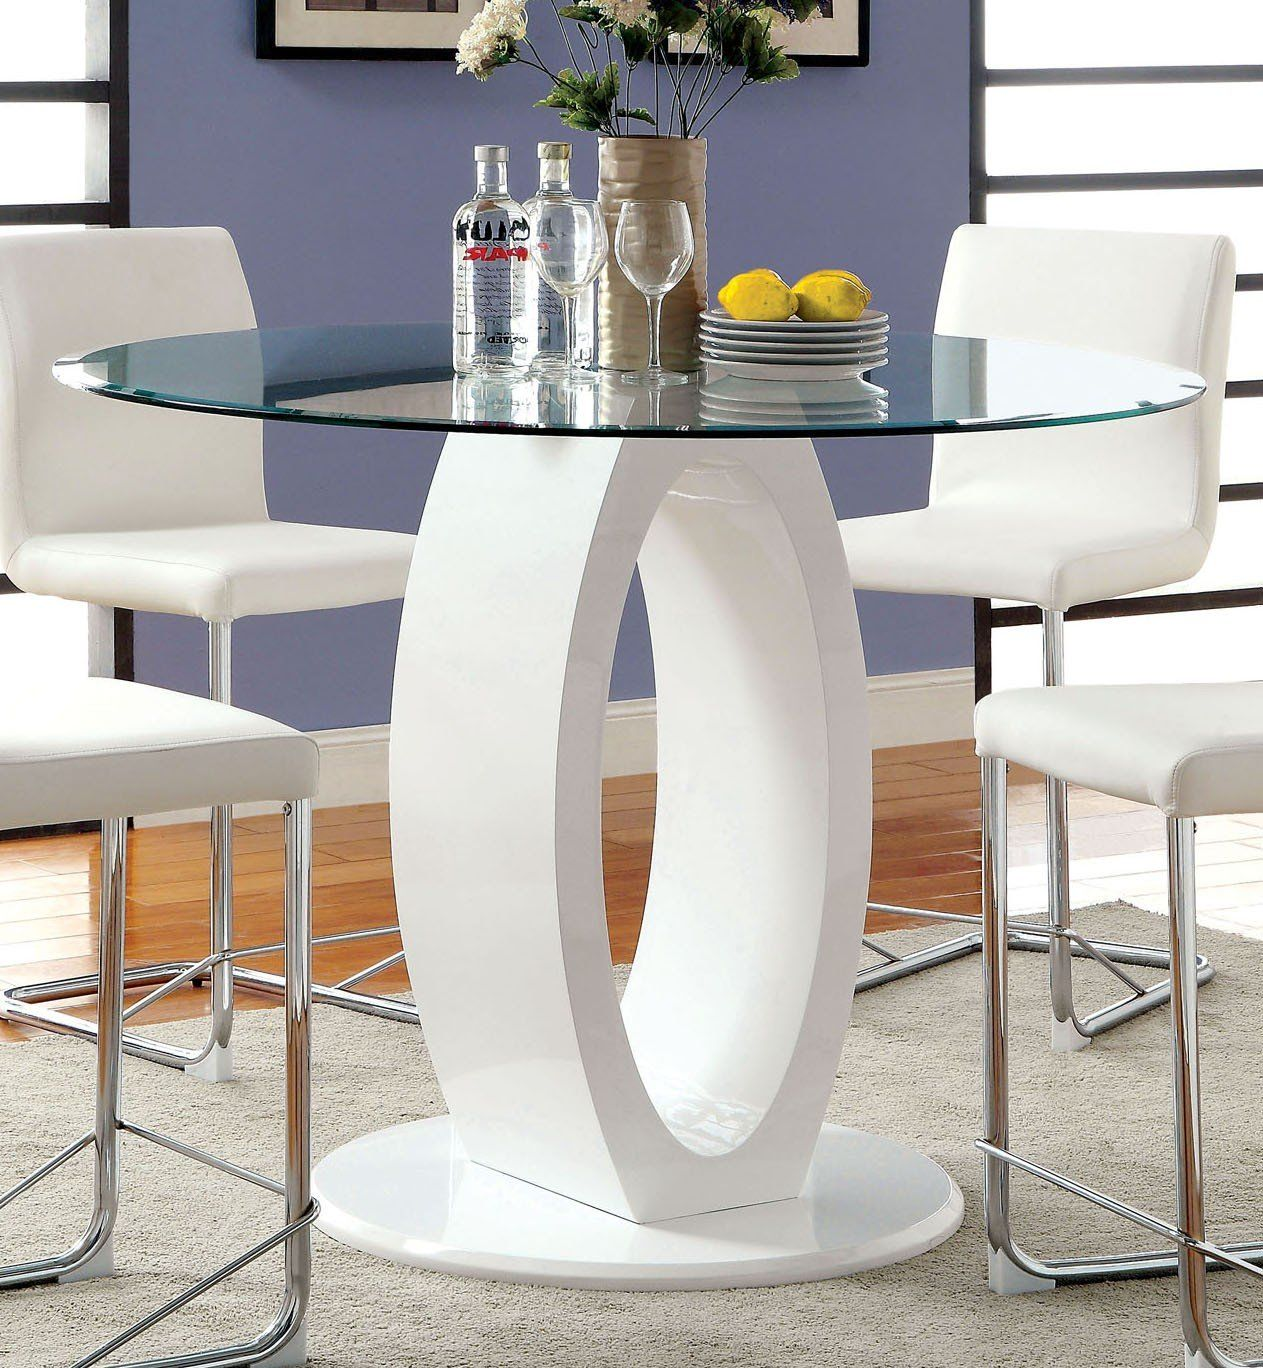 1035 6 7 For The Dining Room Round Counter Height Table